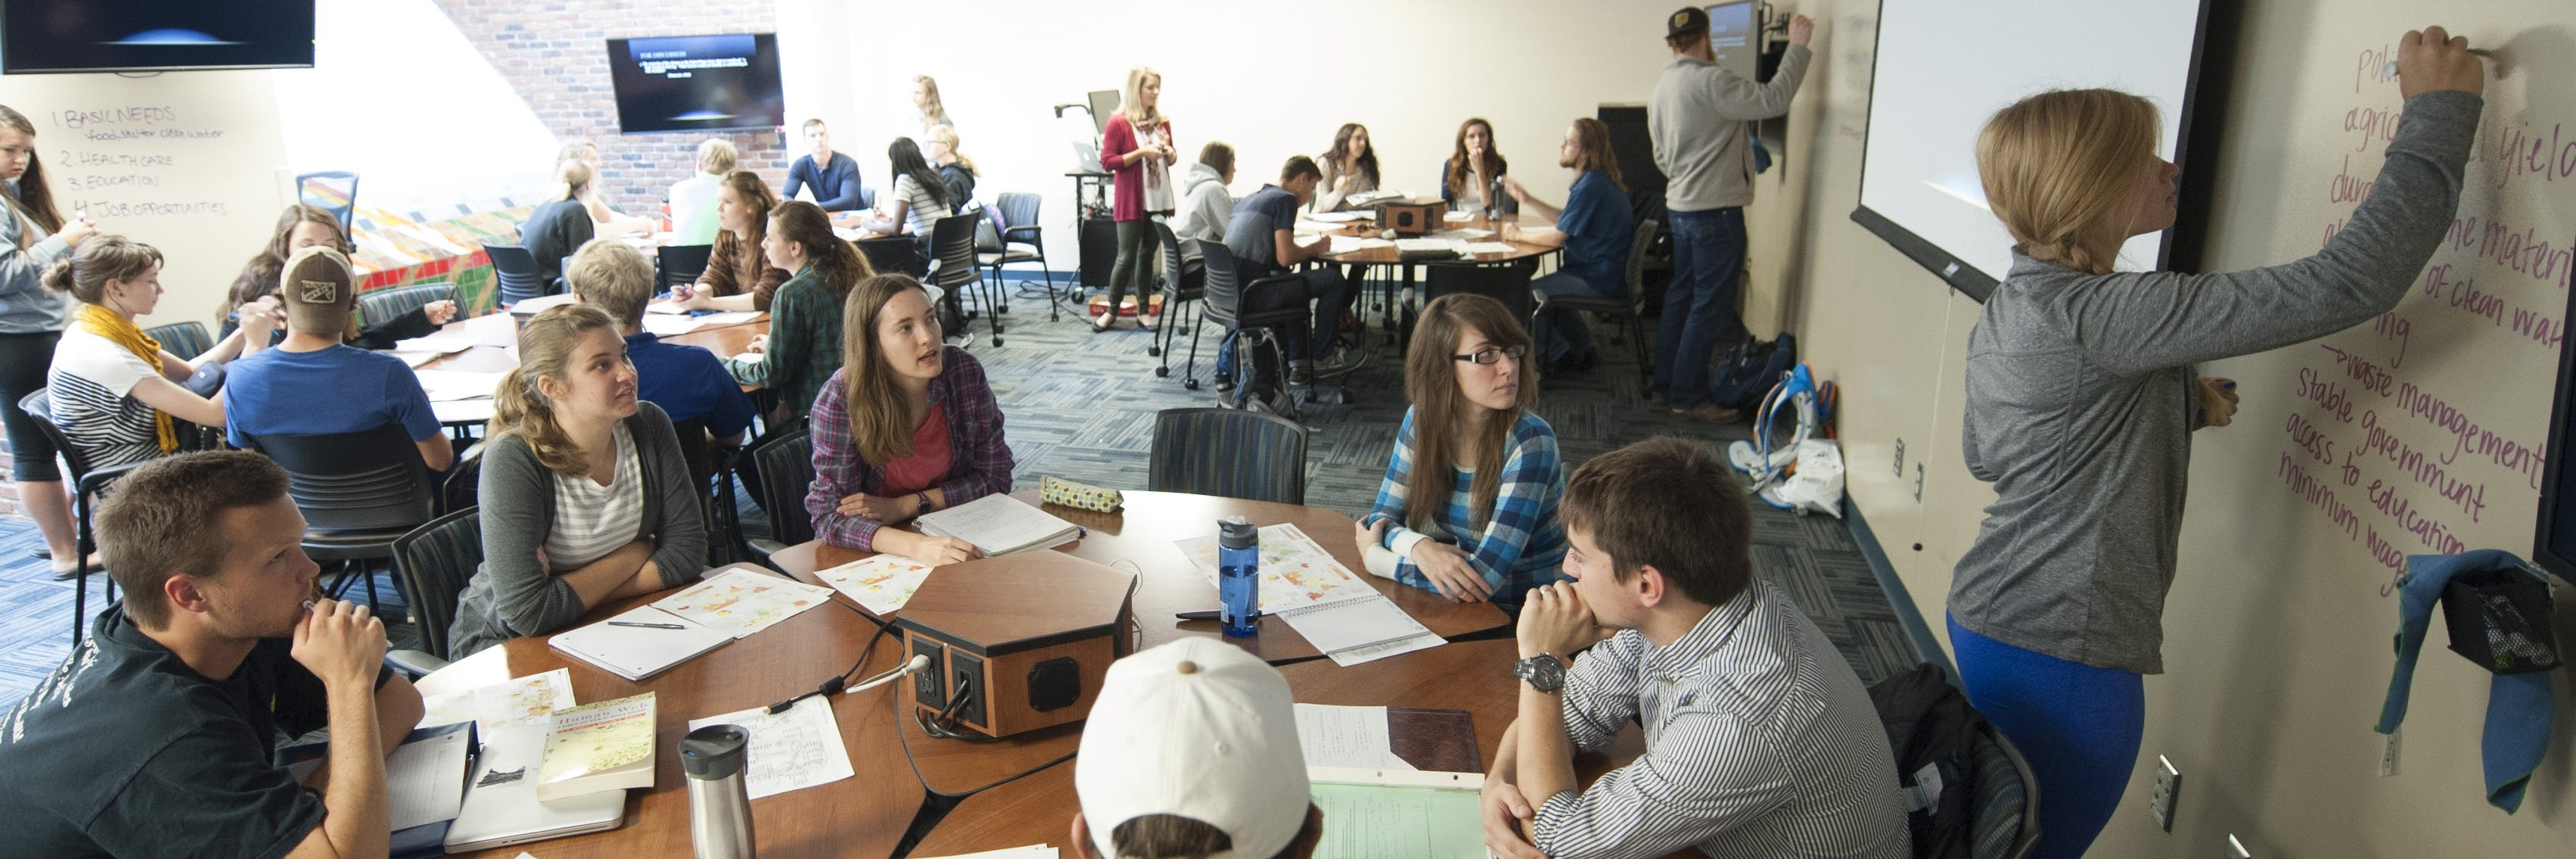 Students work in a group.